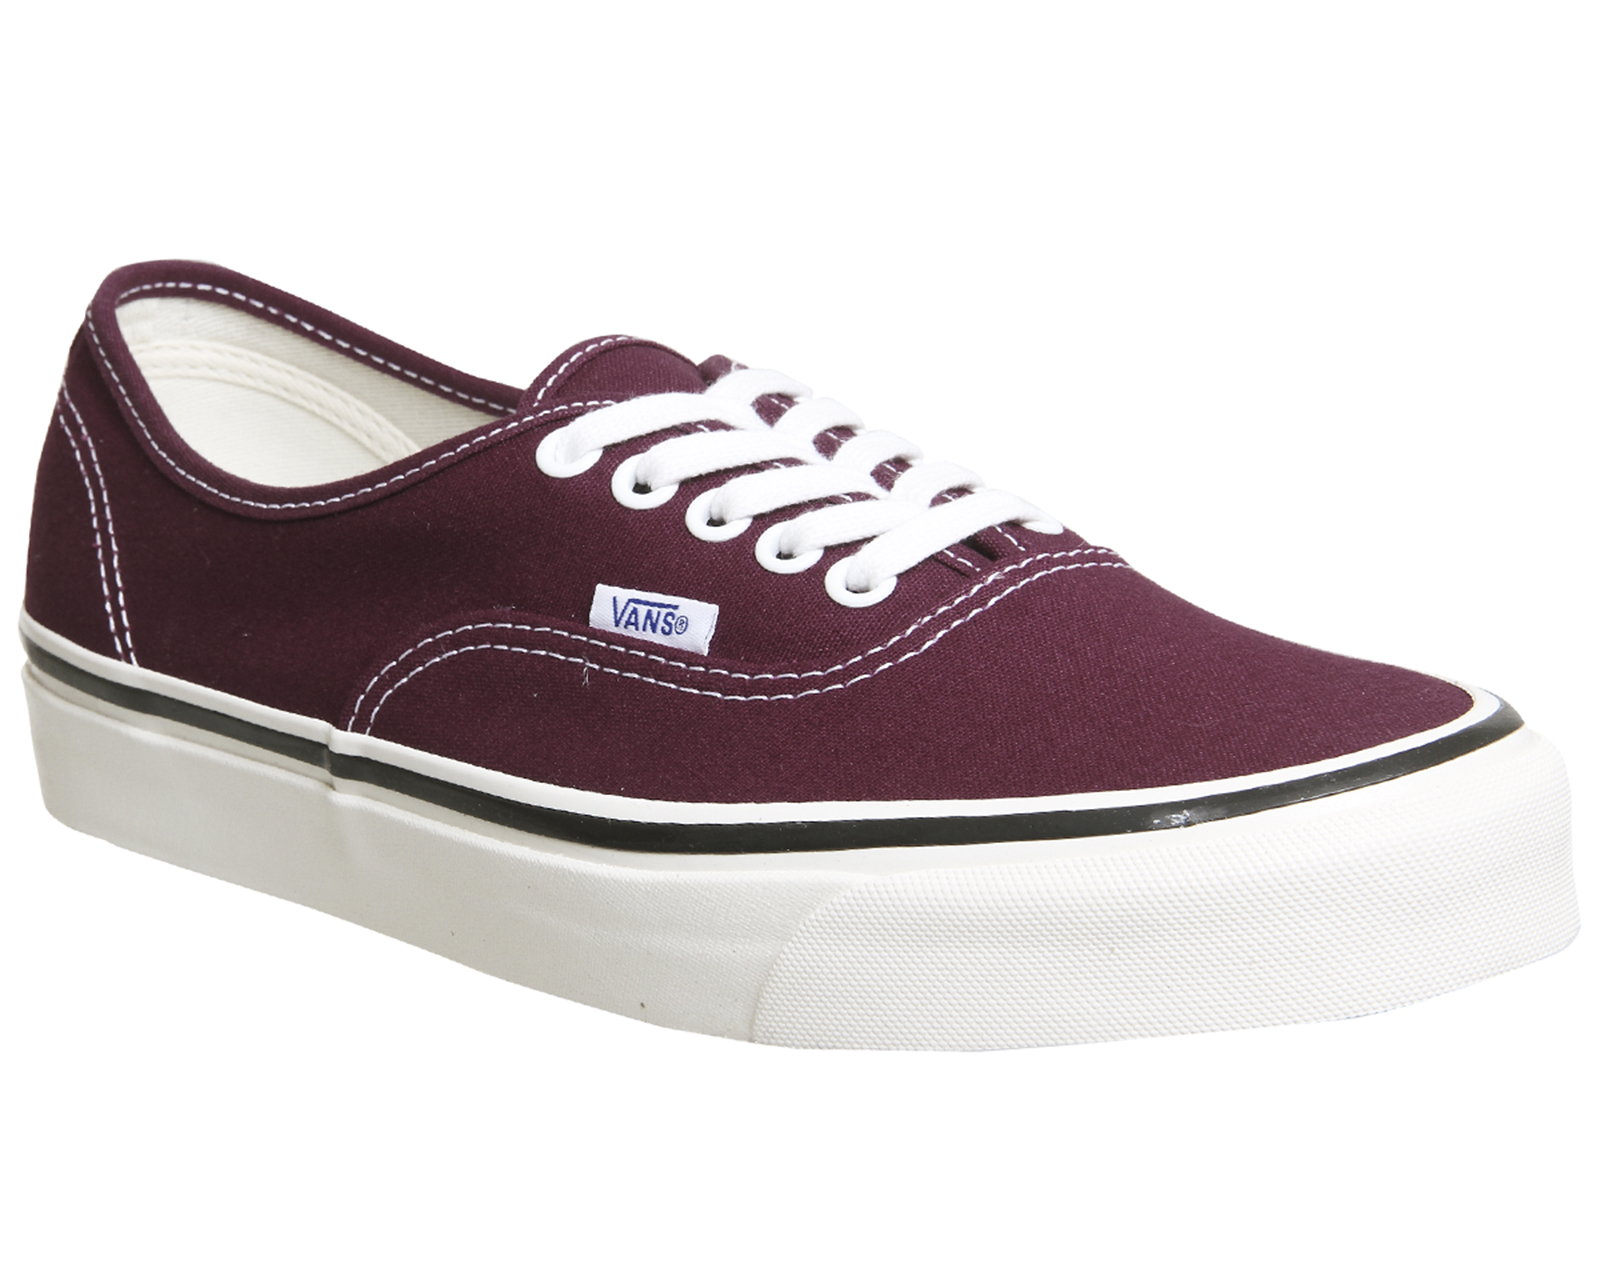 343b8be41f Sentinel Mens Vans Burgundy Canvas Lace Up Trainers Size UK 8  Ex-Display